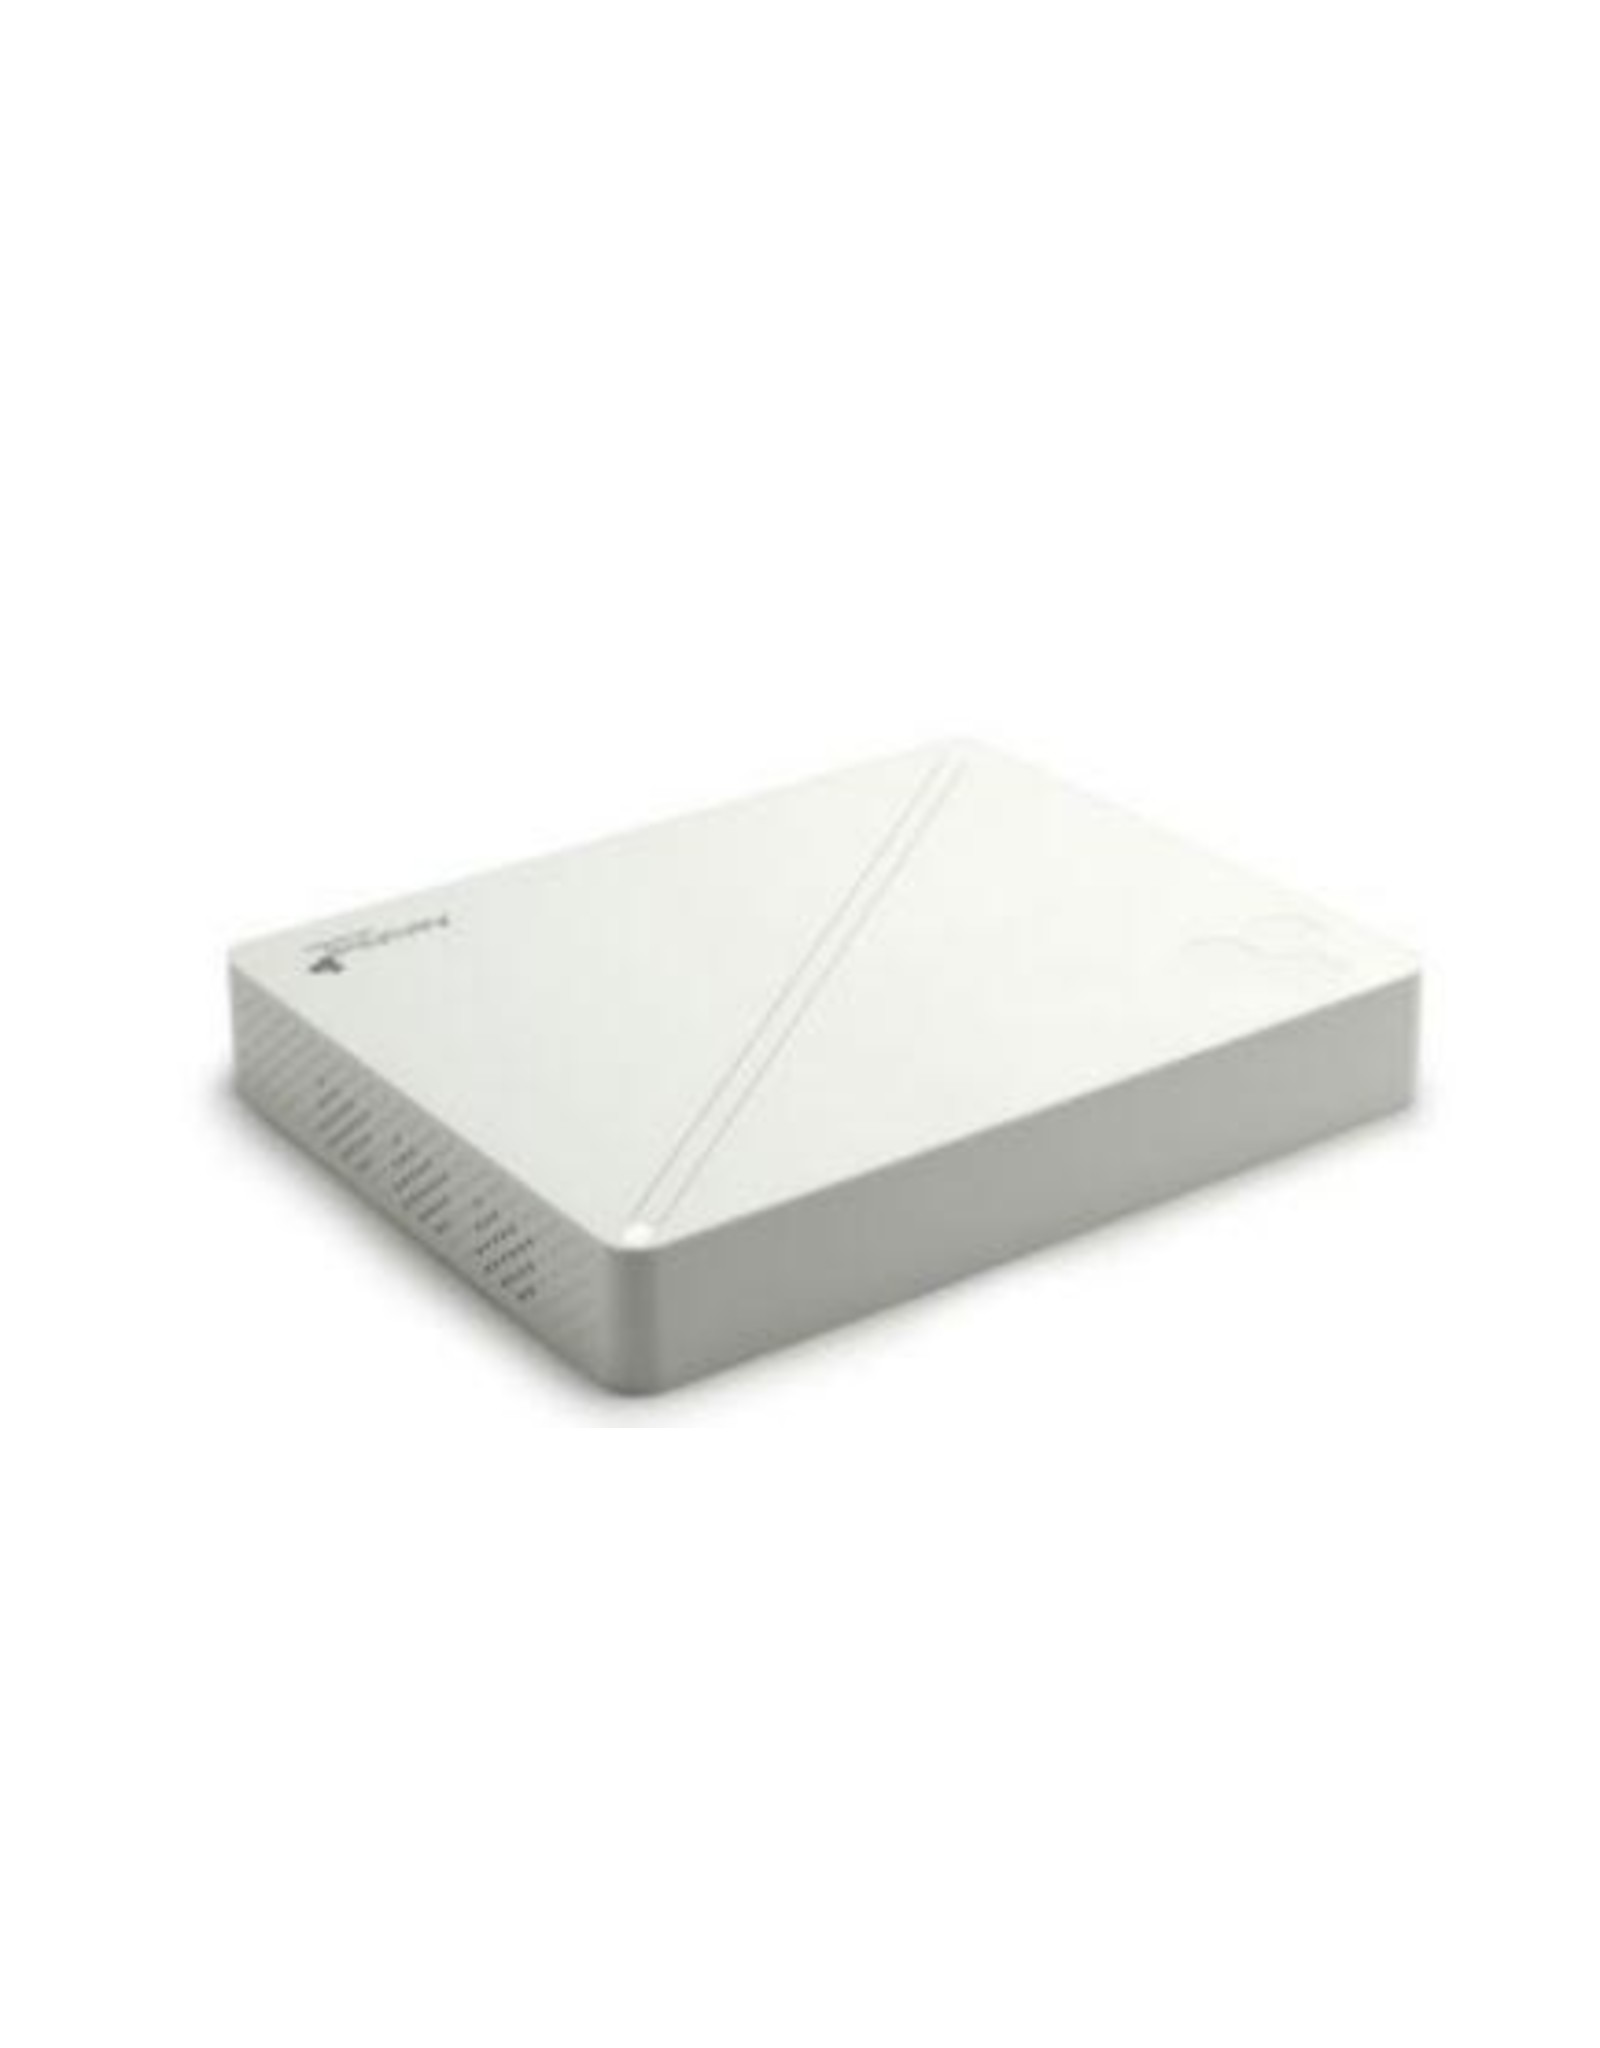 Aerohive Aerohive Router XR200P SD-WAN 5X 1GB/2X POE OUT